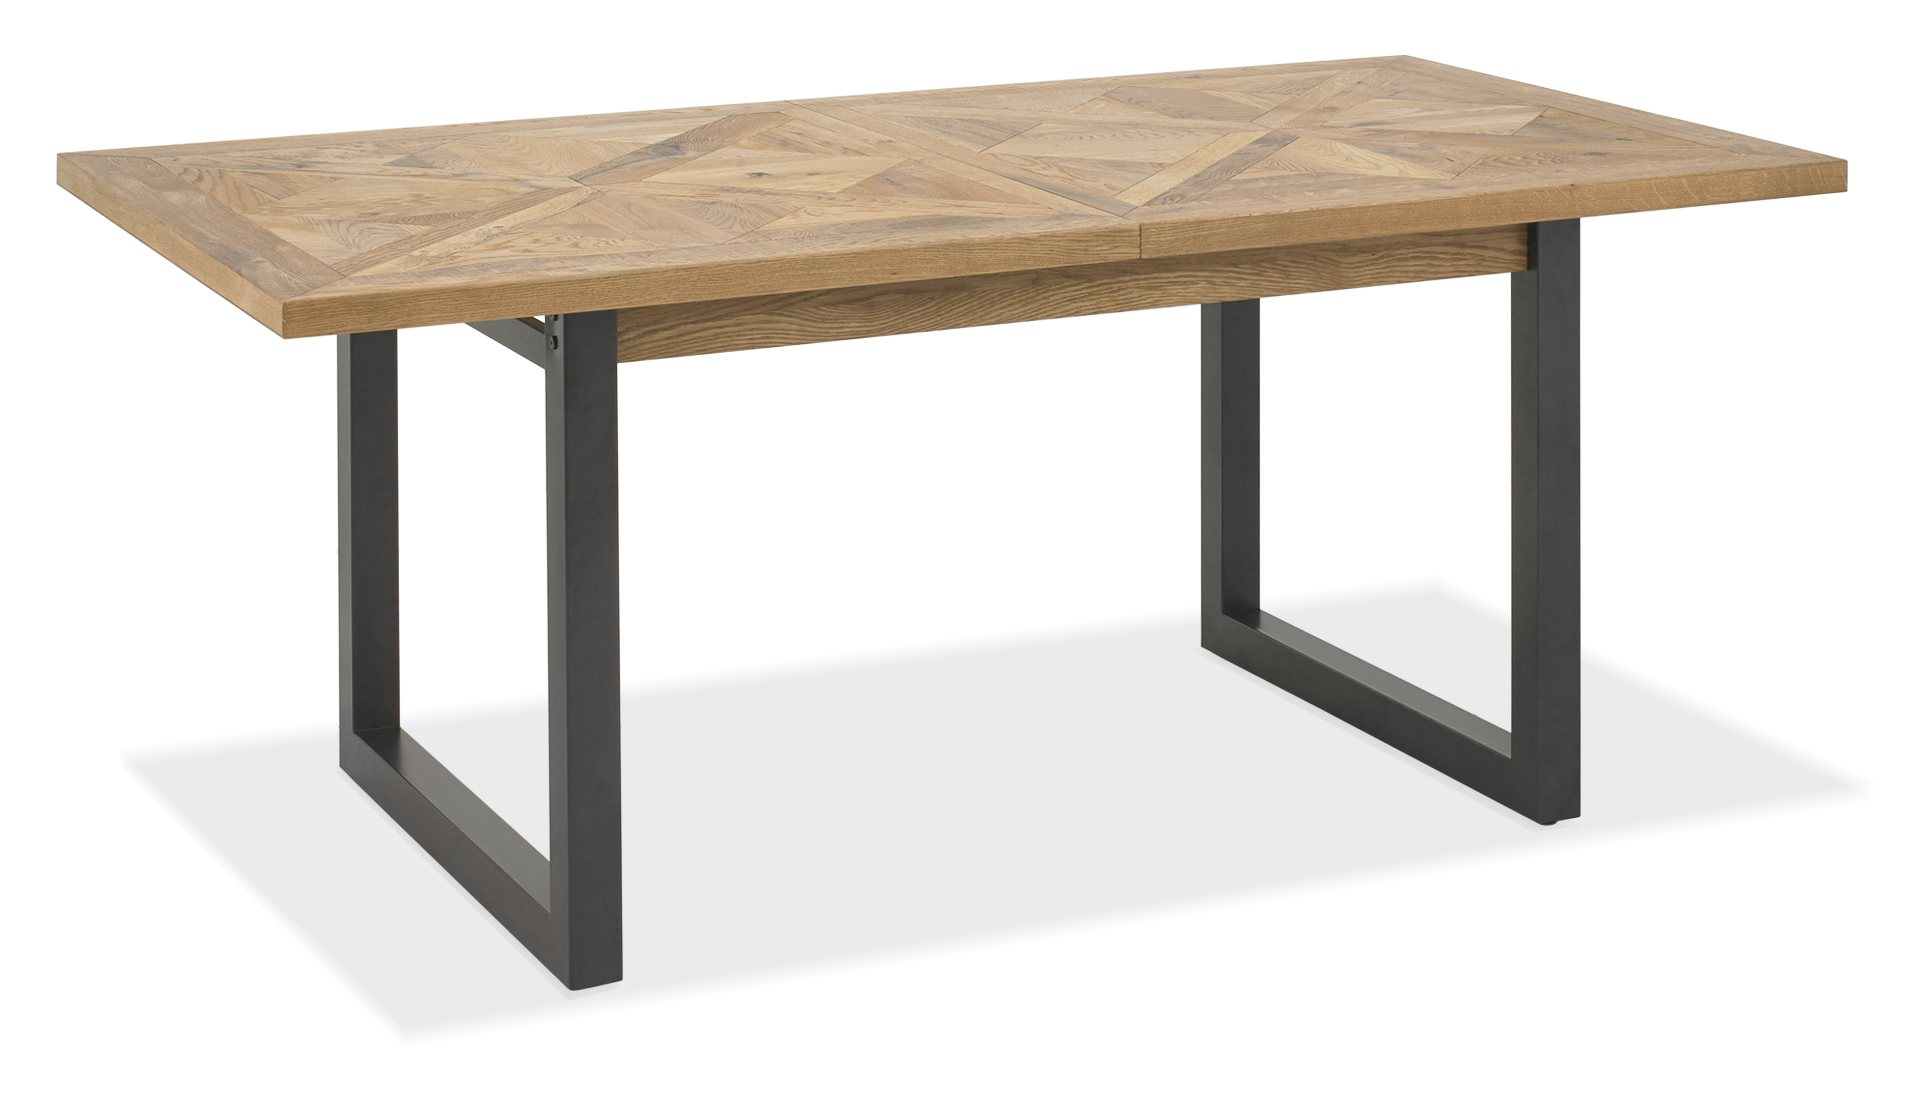 HELIX LARGE TABLE CLOSED L190cm x D100cm x H77cm